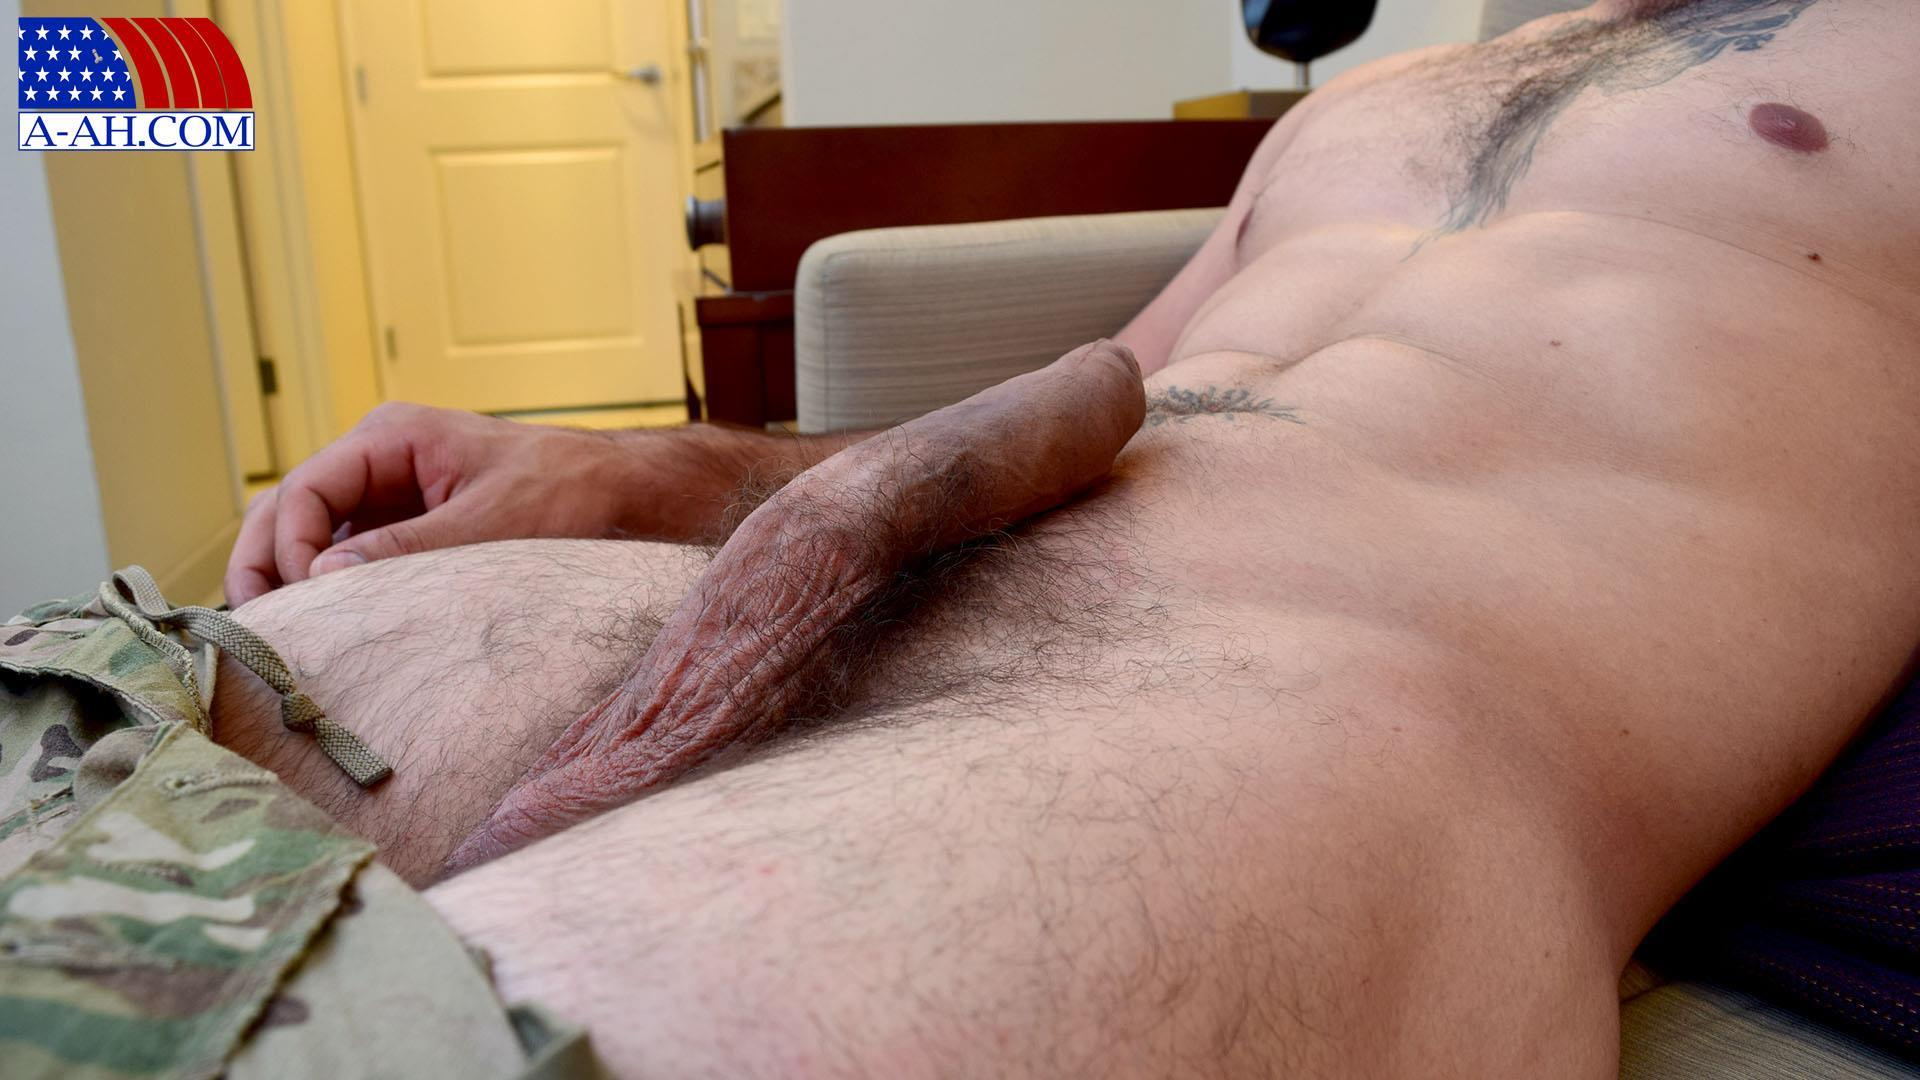 All-American-Heroes-JB-US-Amry-Soldier-Jerking-His-Big-Uncut-Cock-Amateur-Gay-Porn-06 Amateur Straight US Army Specialist Stroking His Big Uncut Cock